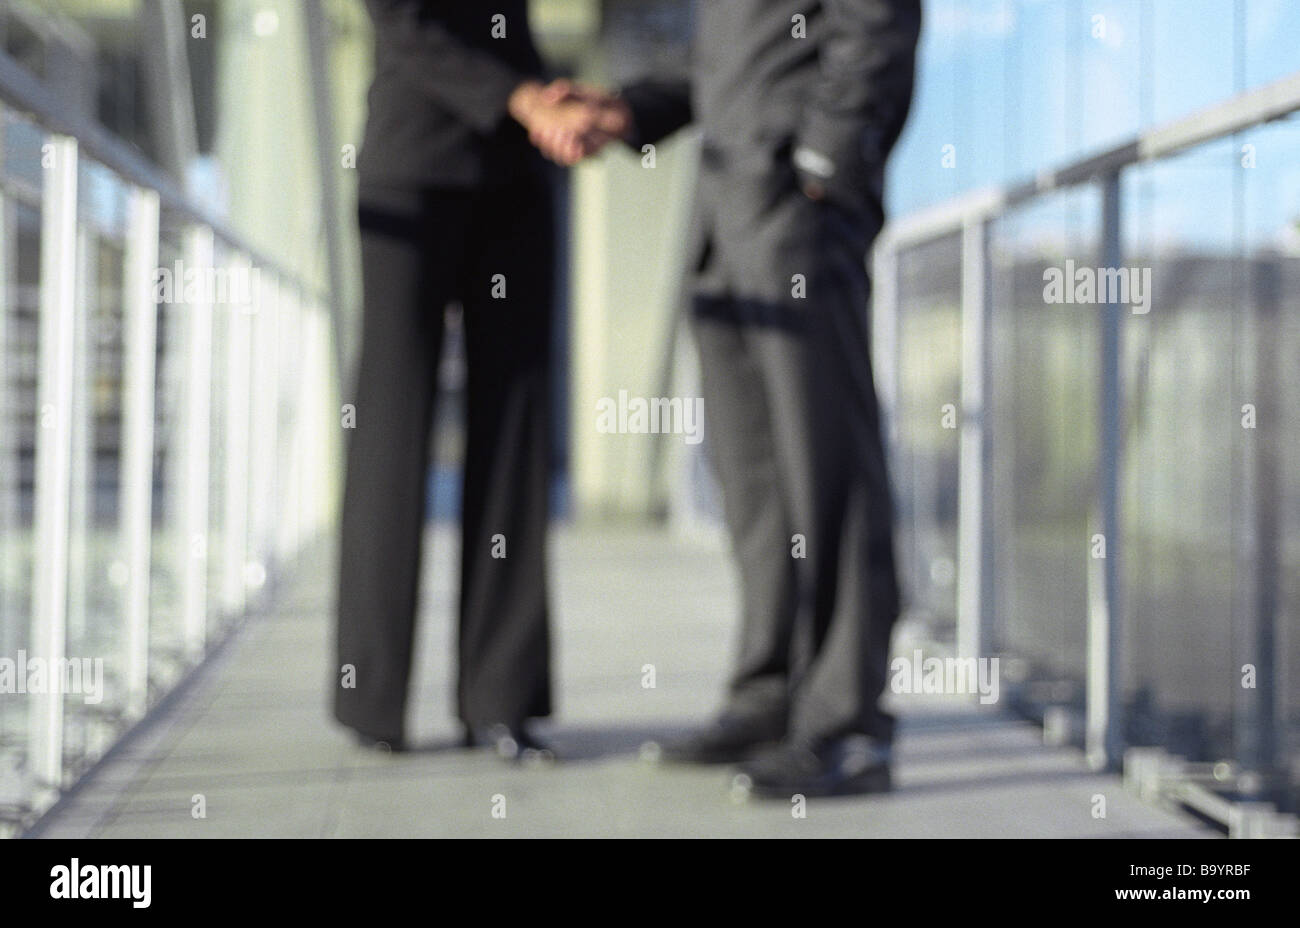 Professionals shaking hands, blurred, low section Stock Photo